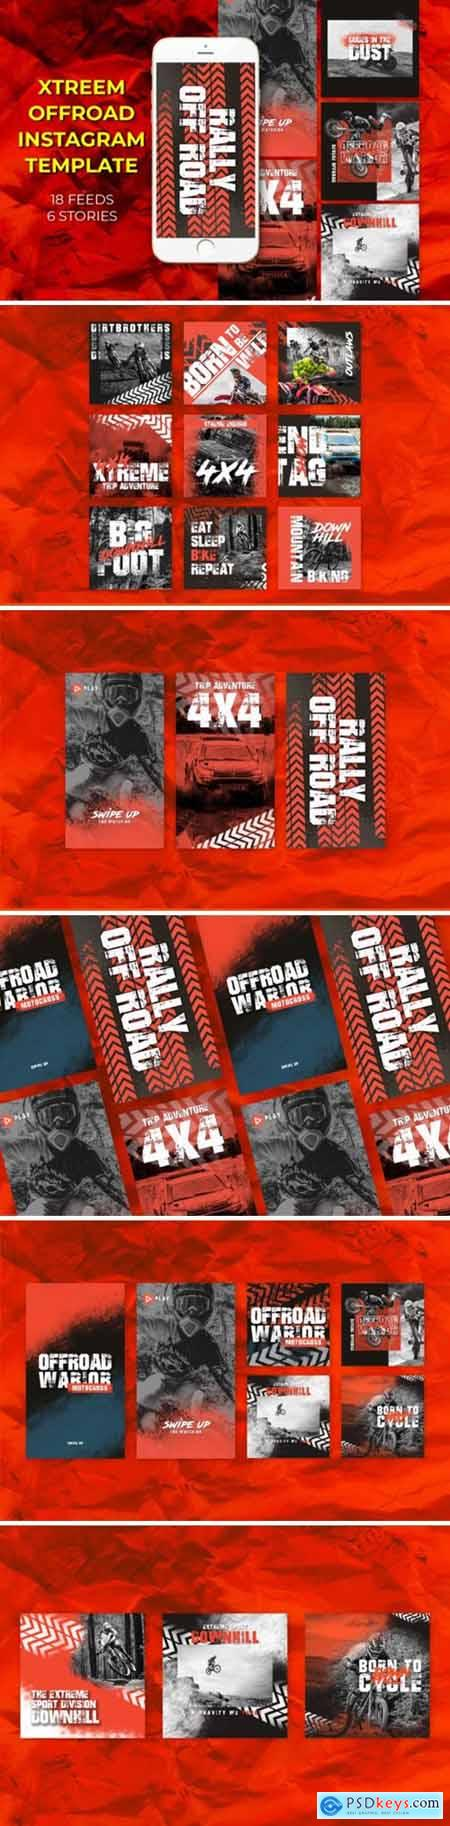 Xtreem Offroad Instagram Templates 1948929